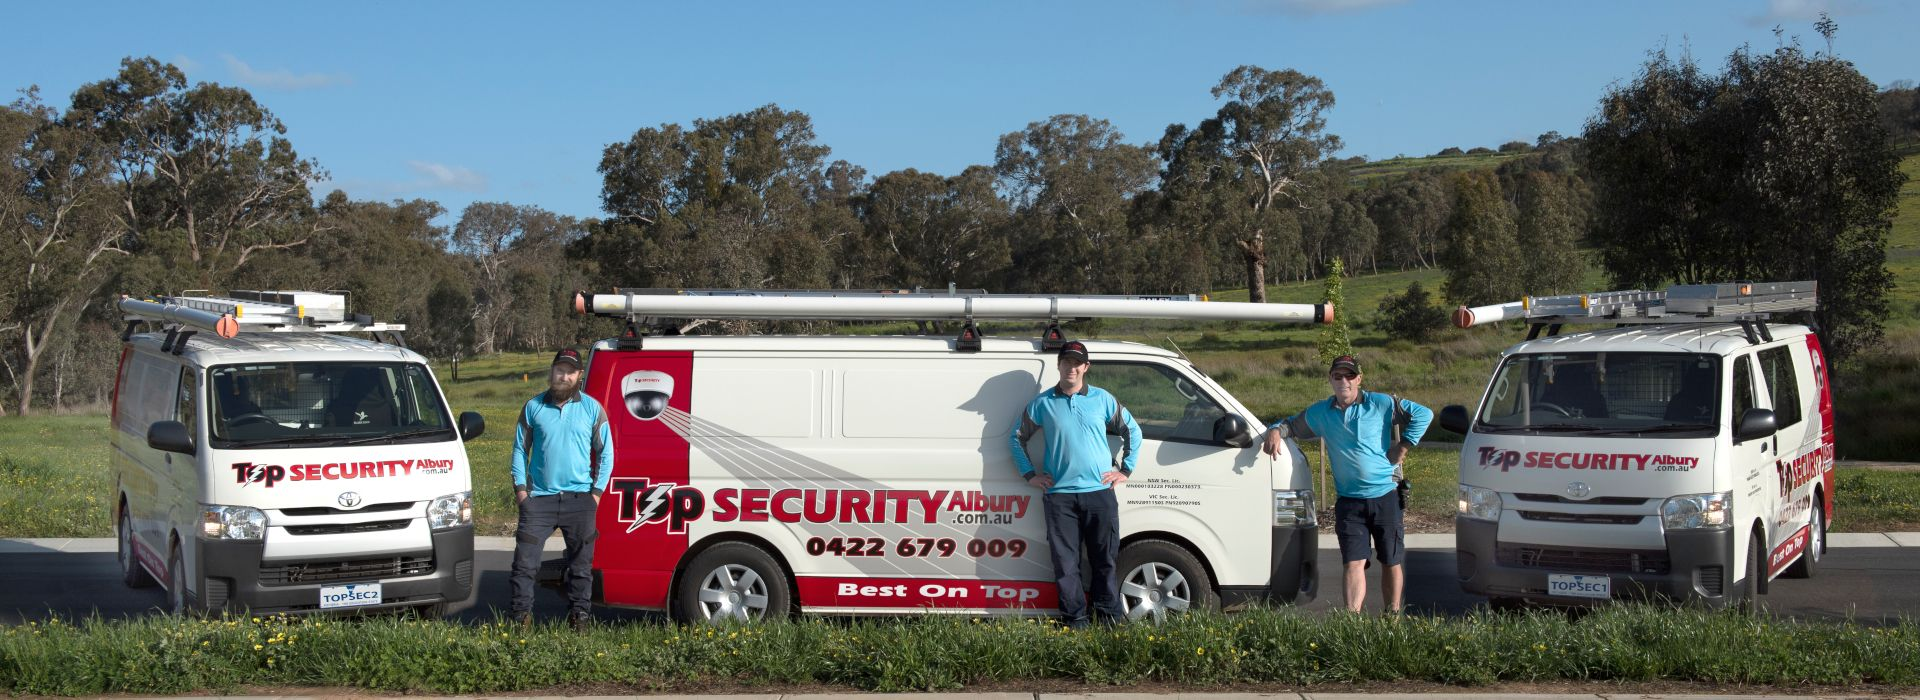 Top Security 3 Work Vans and Crew